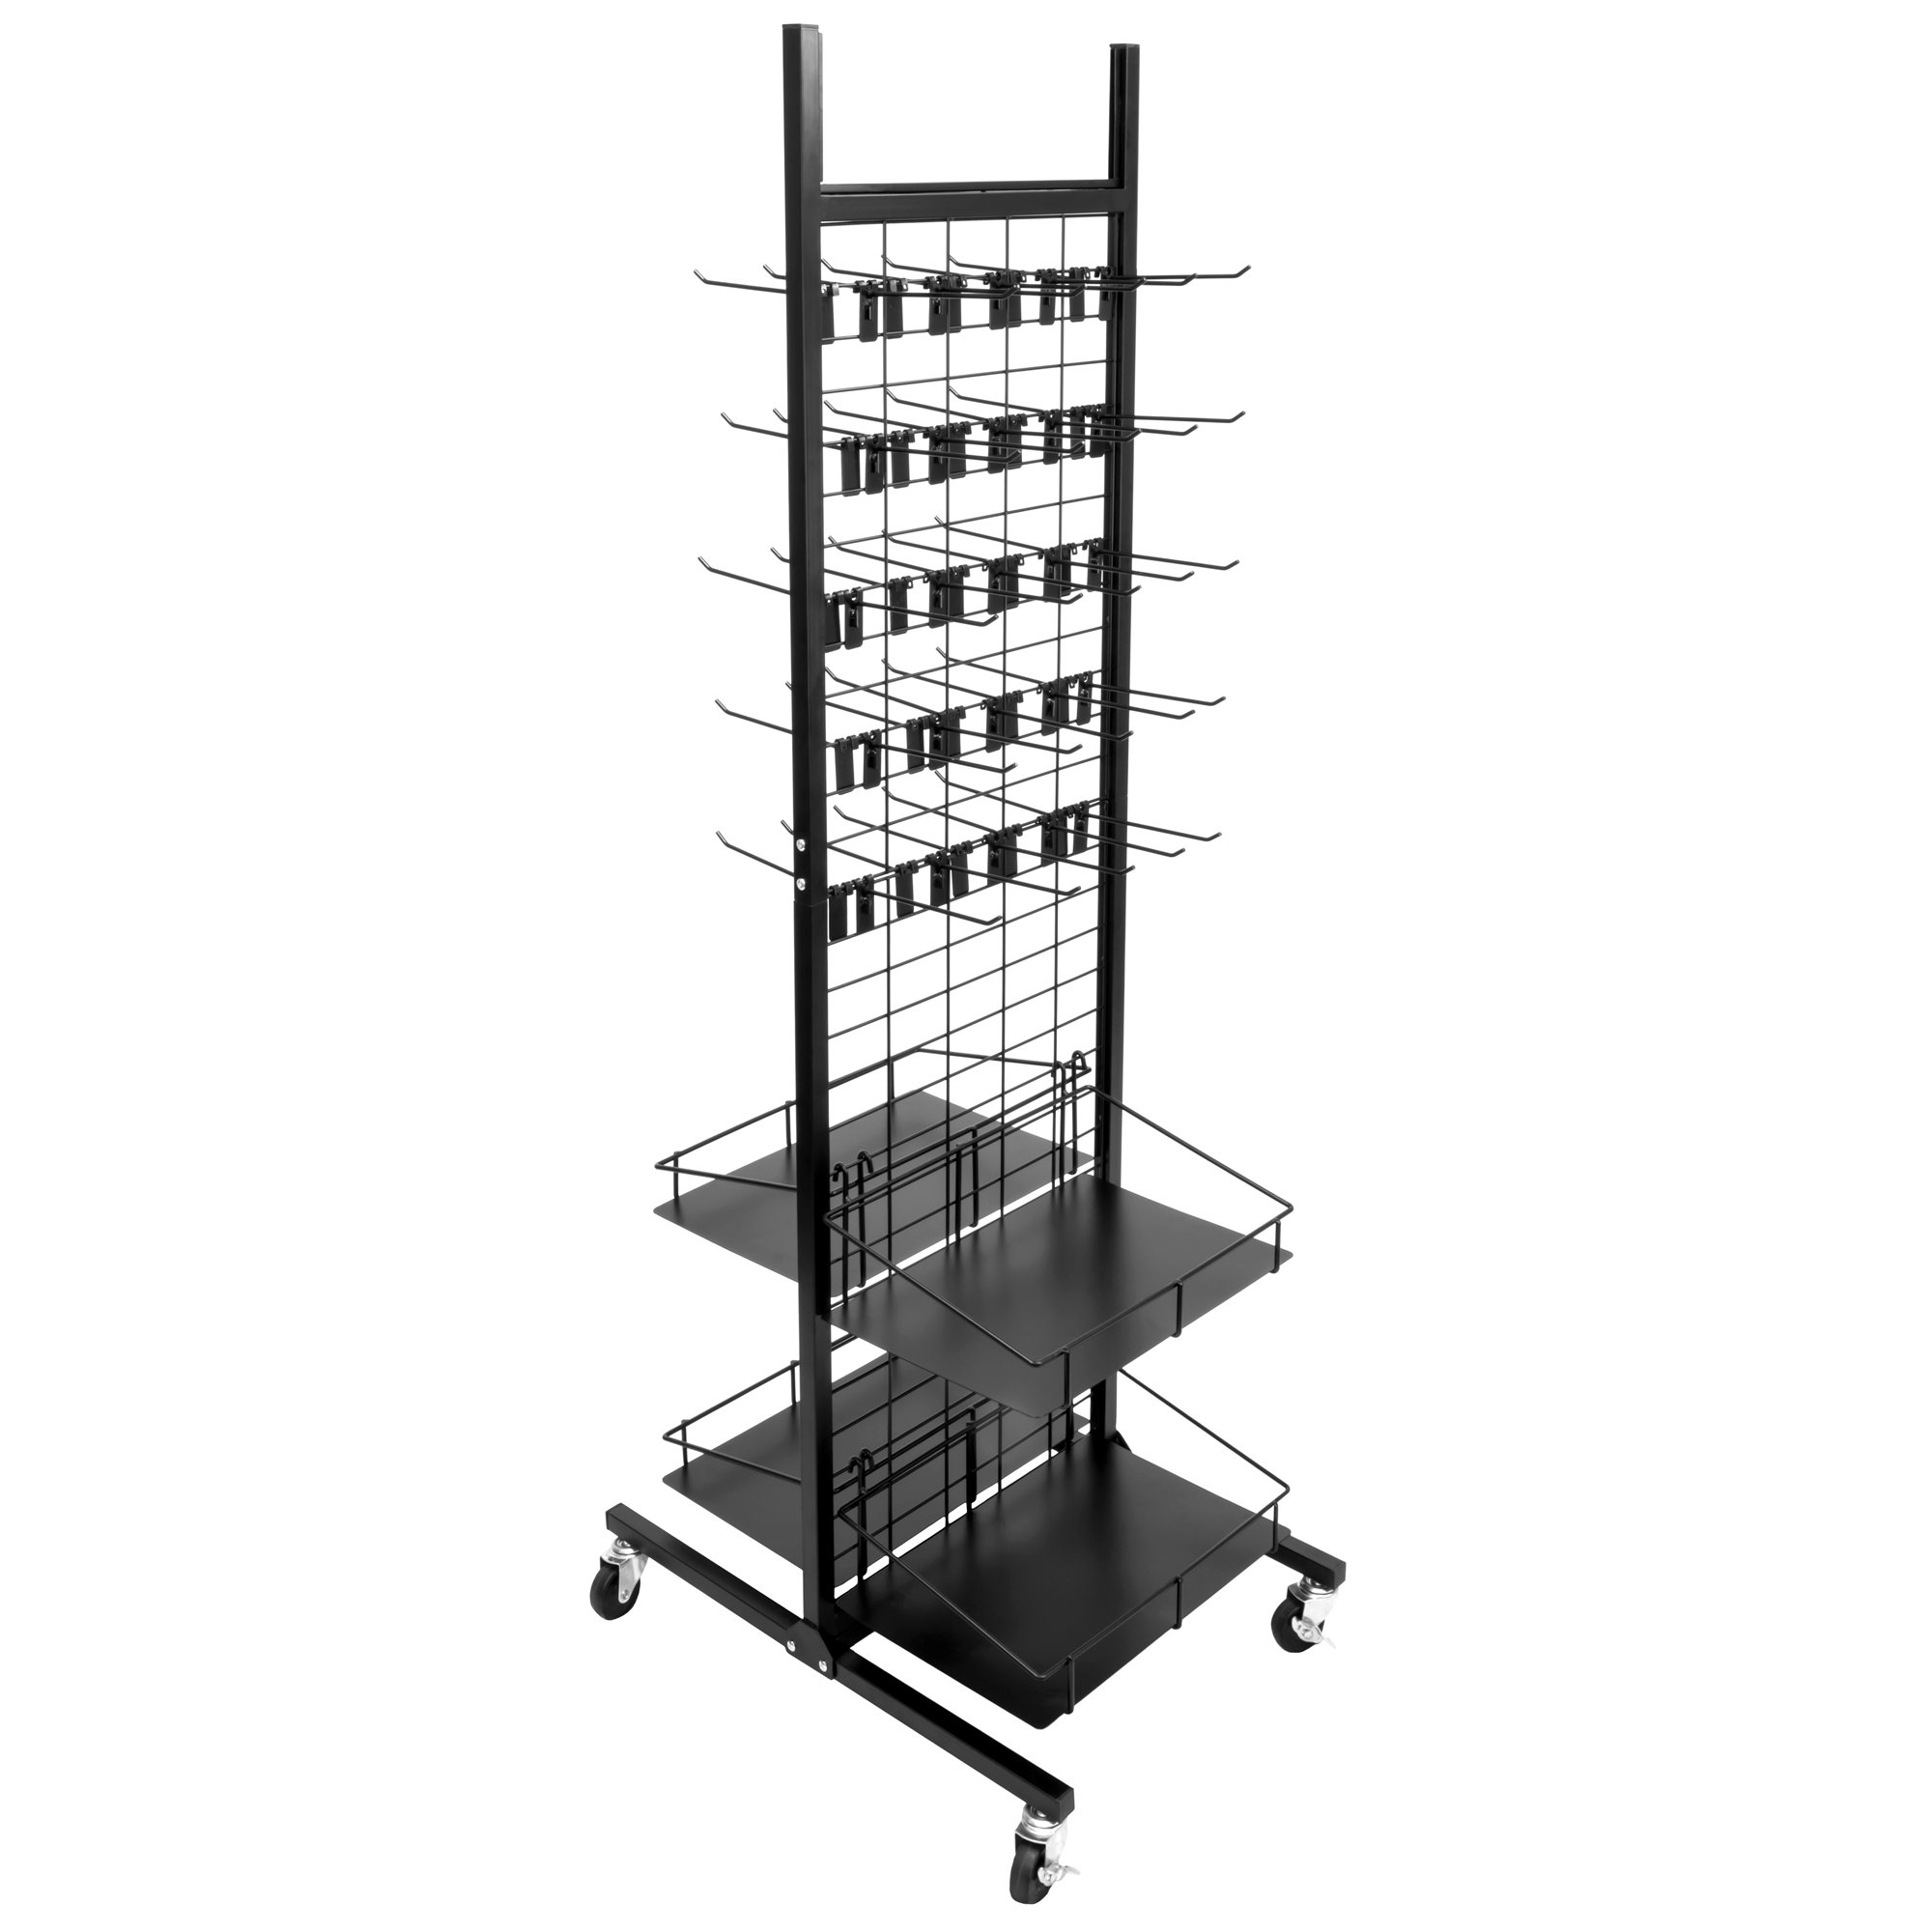 Rolling Retail Display Merchandising Rack Store Fixture, 66'' Tall x 28'' Footprint, Includes 50 Peg Hooks and 4 Shelves by Brybelly